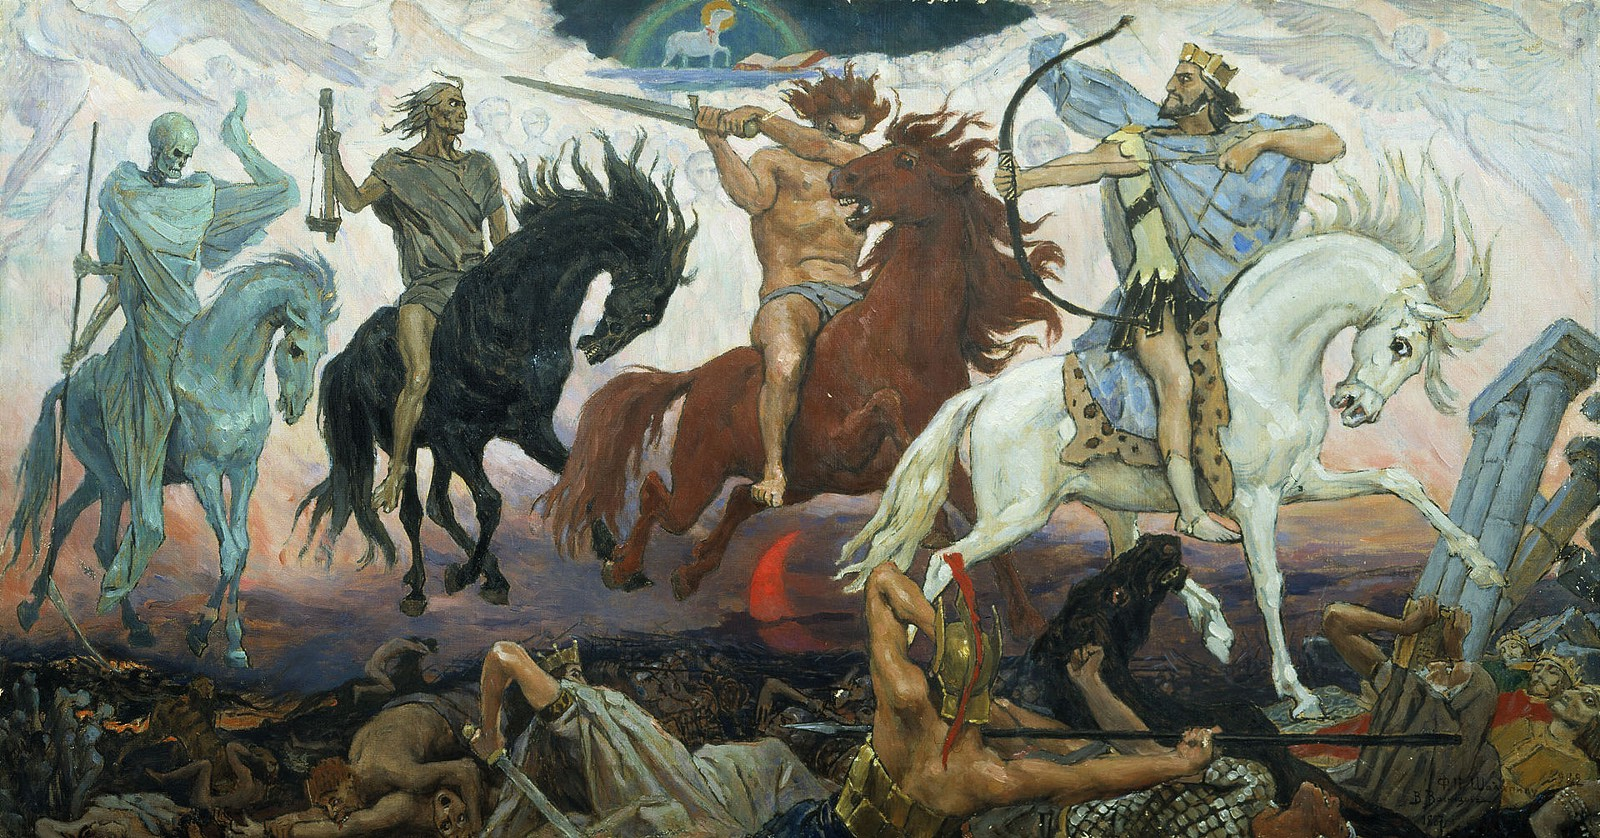 /the-four-horsemen-of-the-cryptocalypse-33acee1d79ac feature image